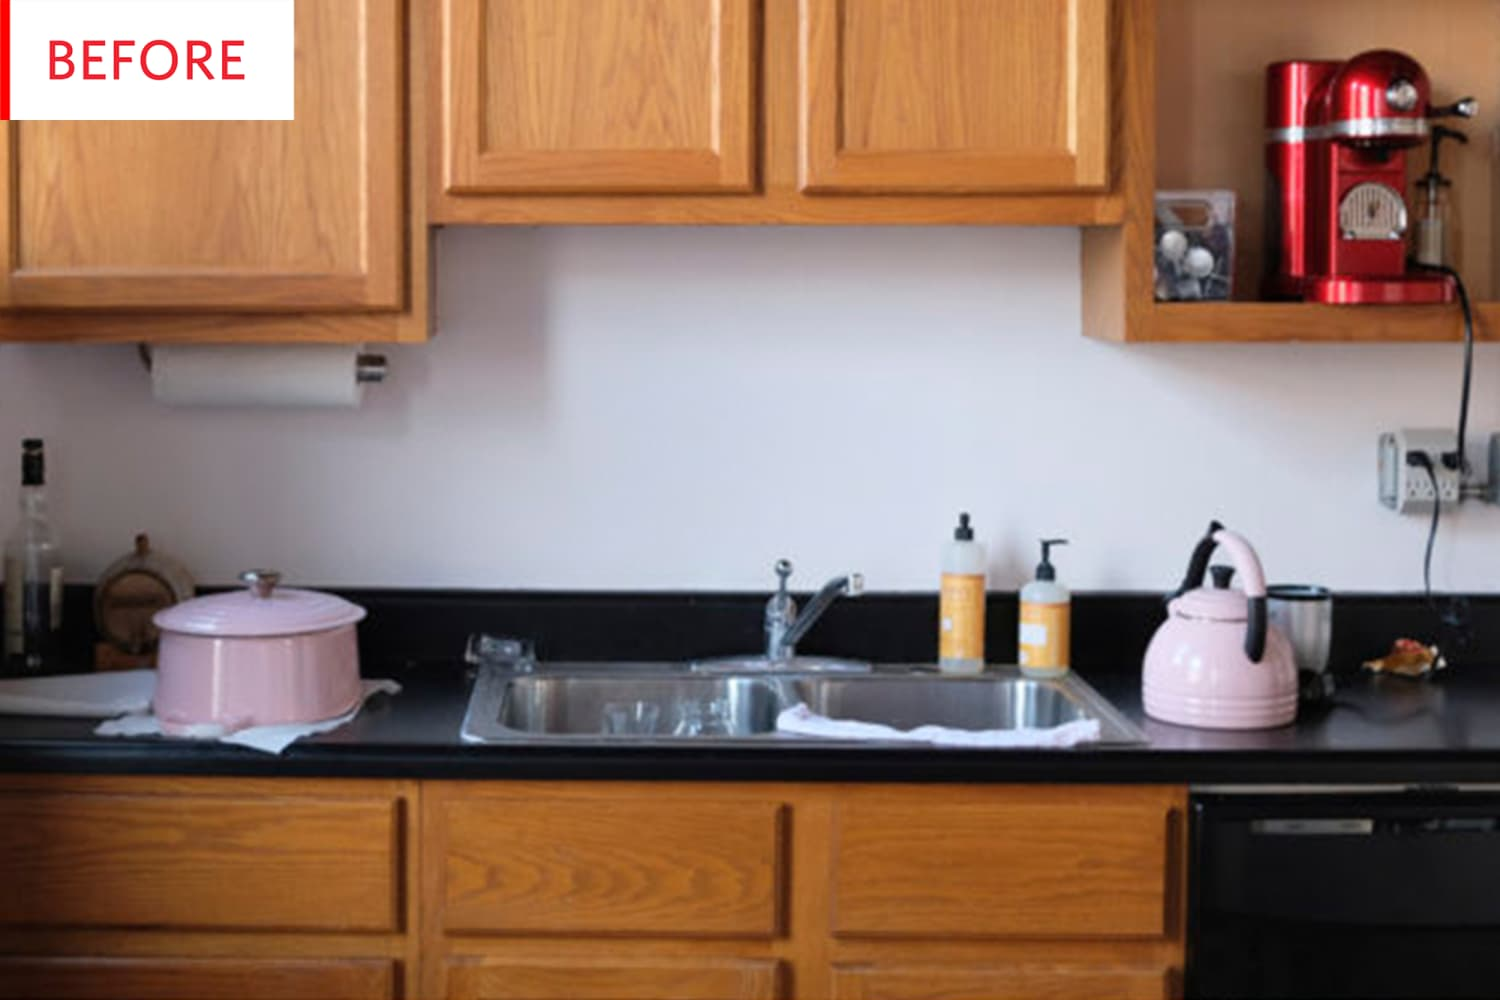 Before & After: This Mind-Blowing Kitchen Renovation Cost Just $200